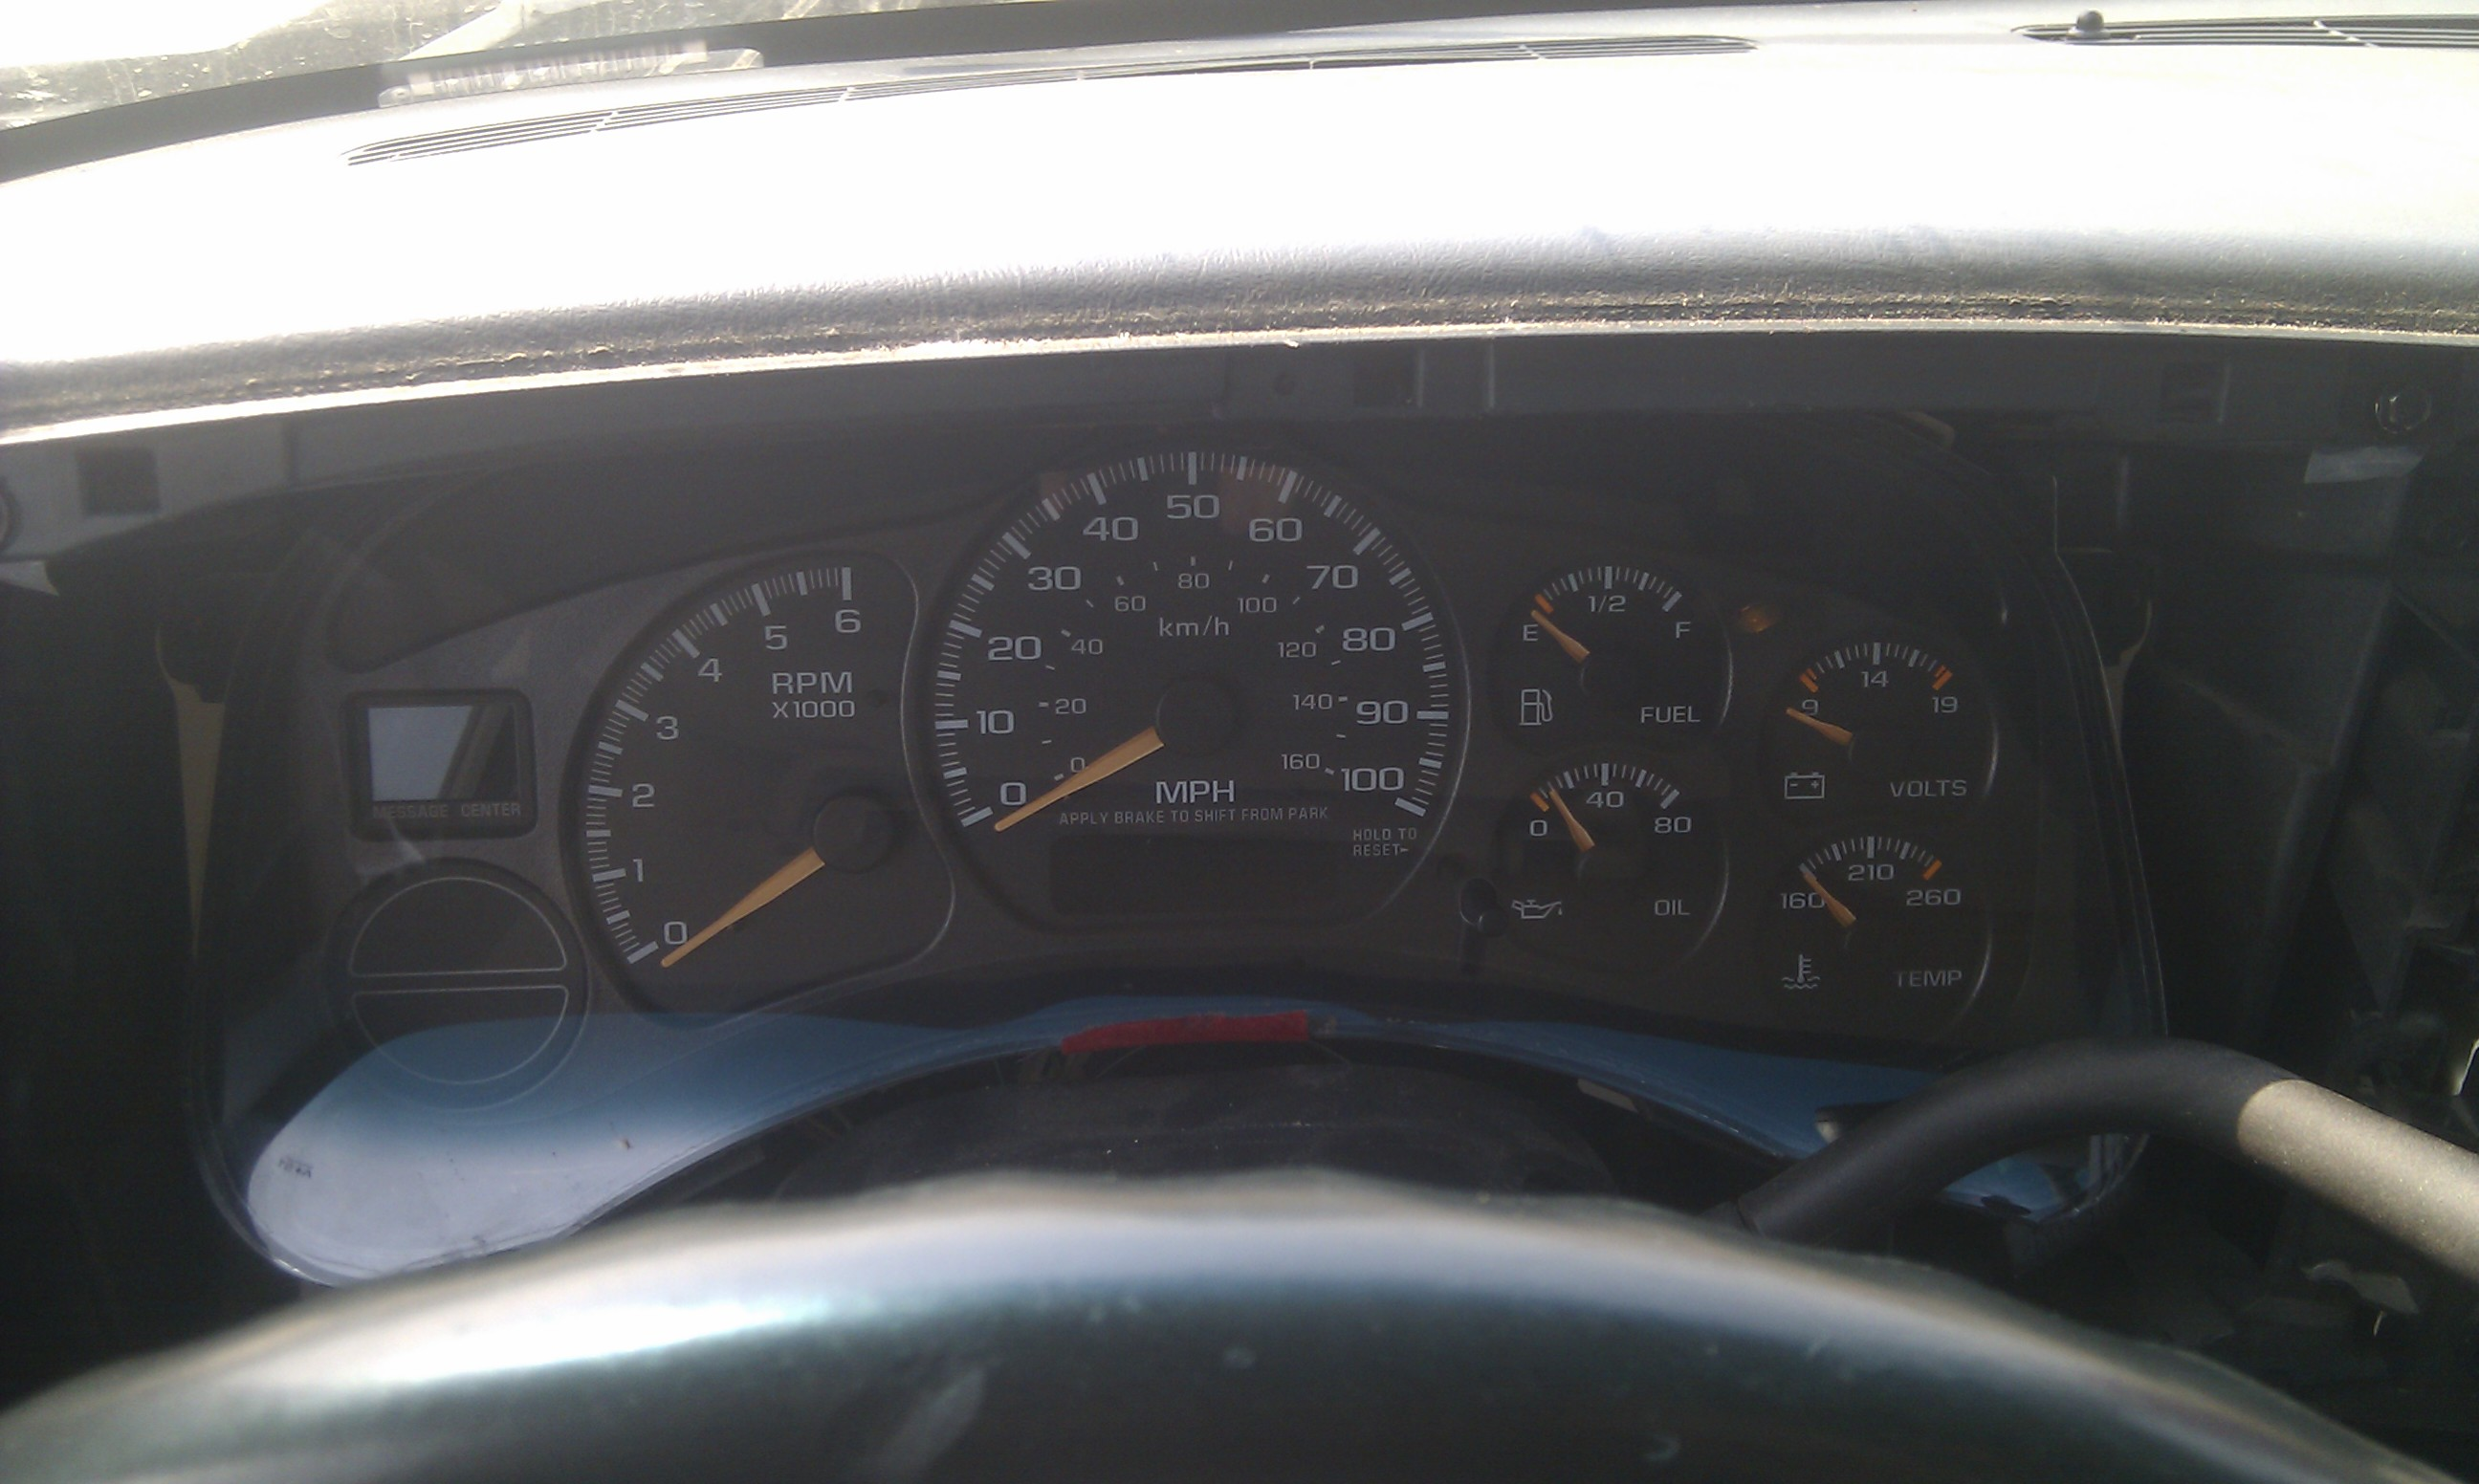 Picture of Obtain Access to the Instrument Cluster